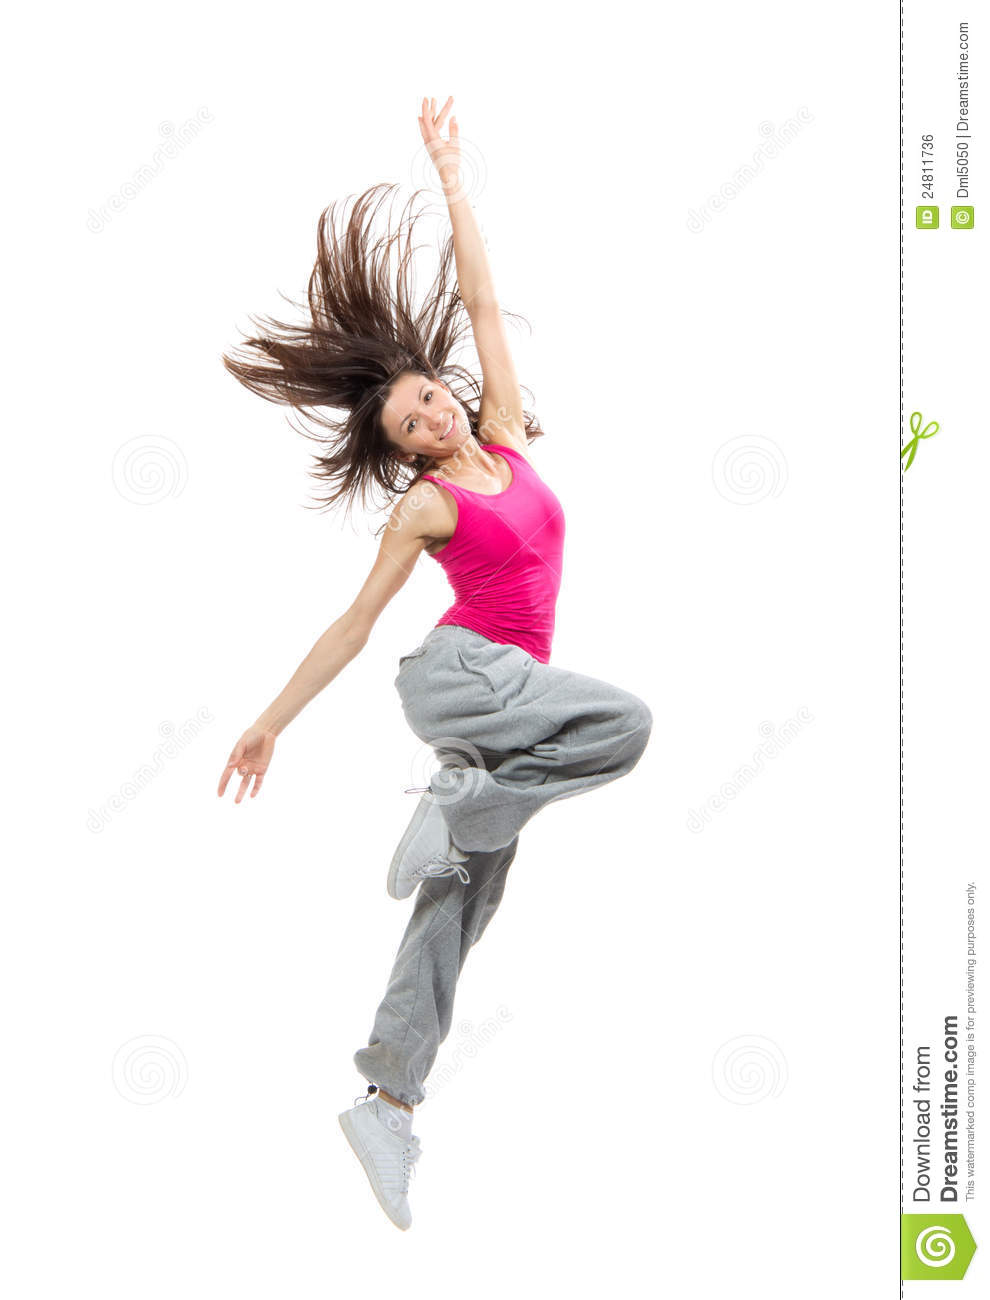 Najstnica Dancer Ples royalty free slike-4815